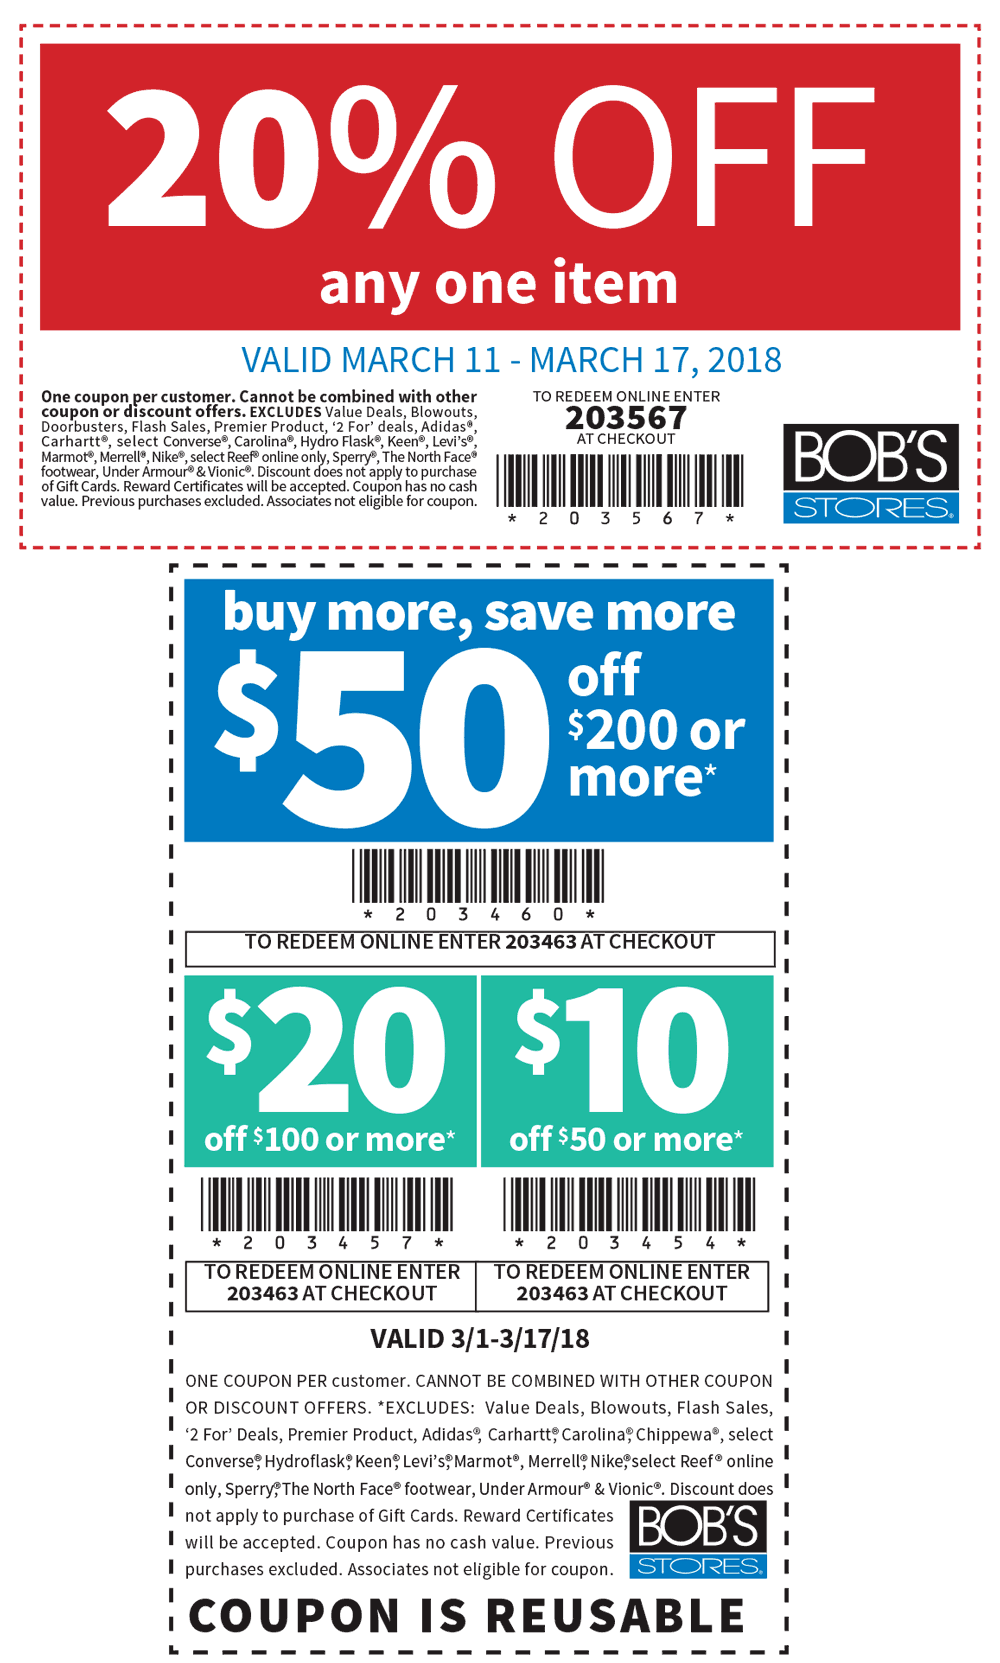 Past Bob's Stores Coupon Codes